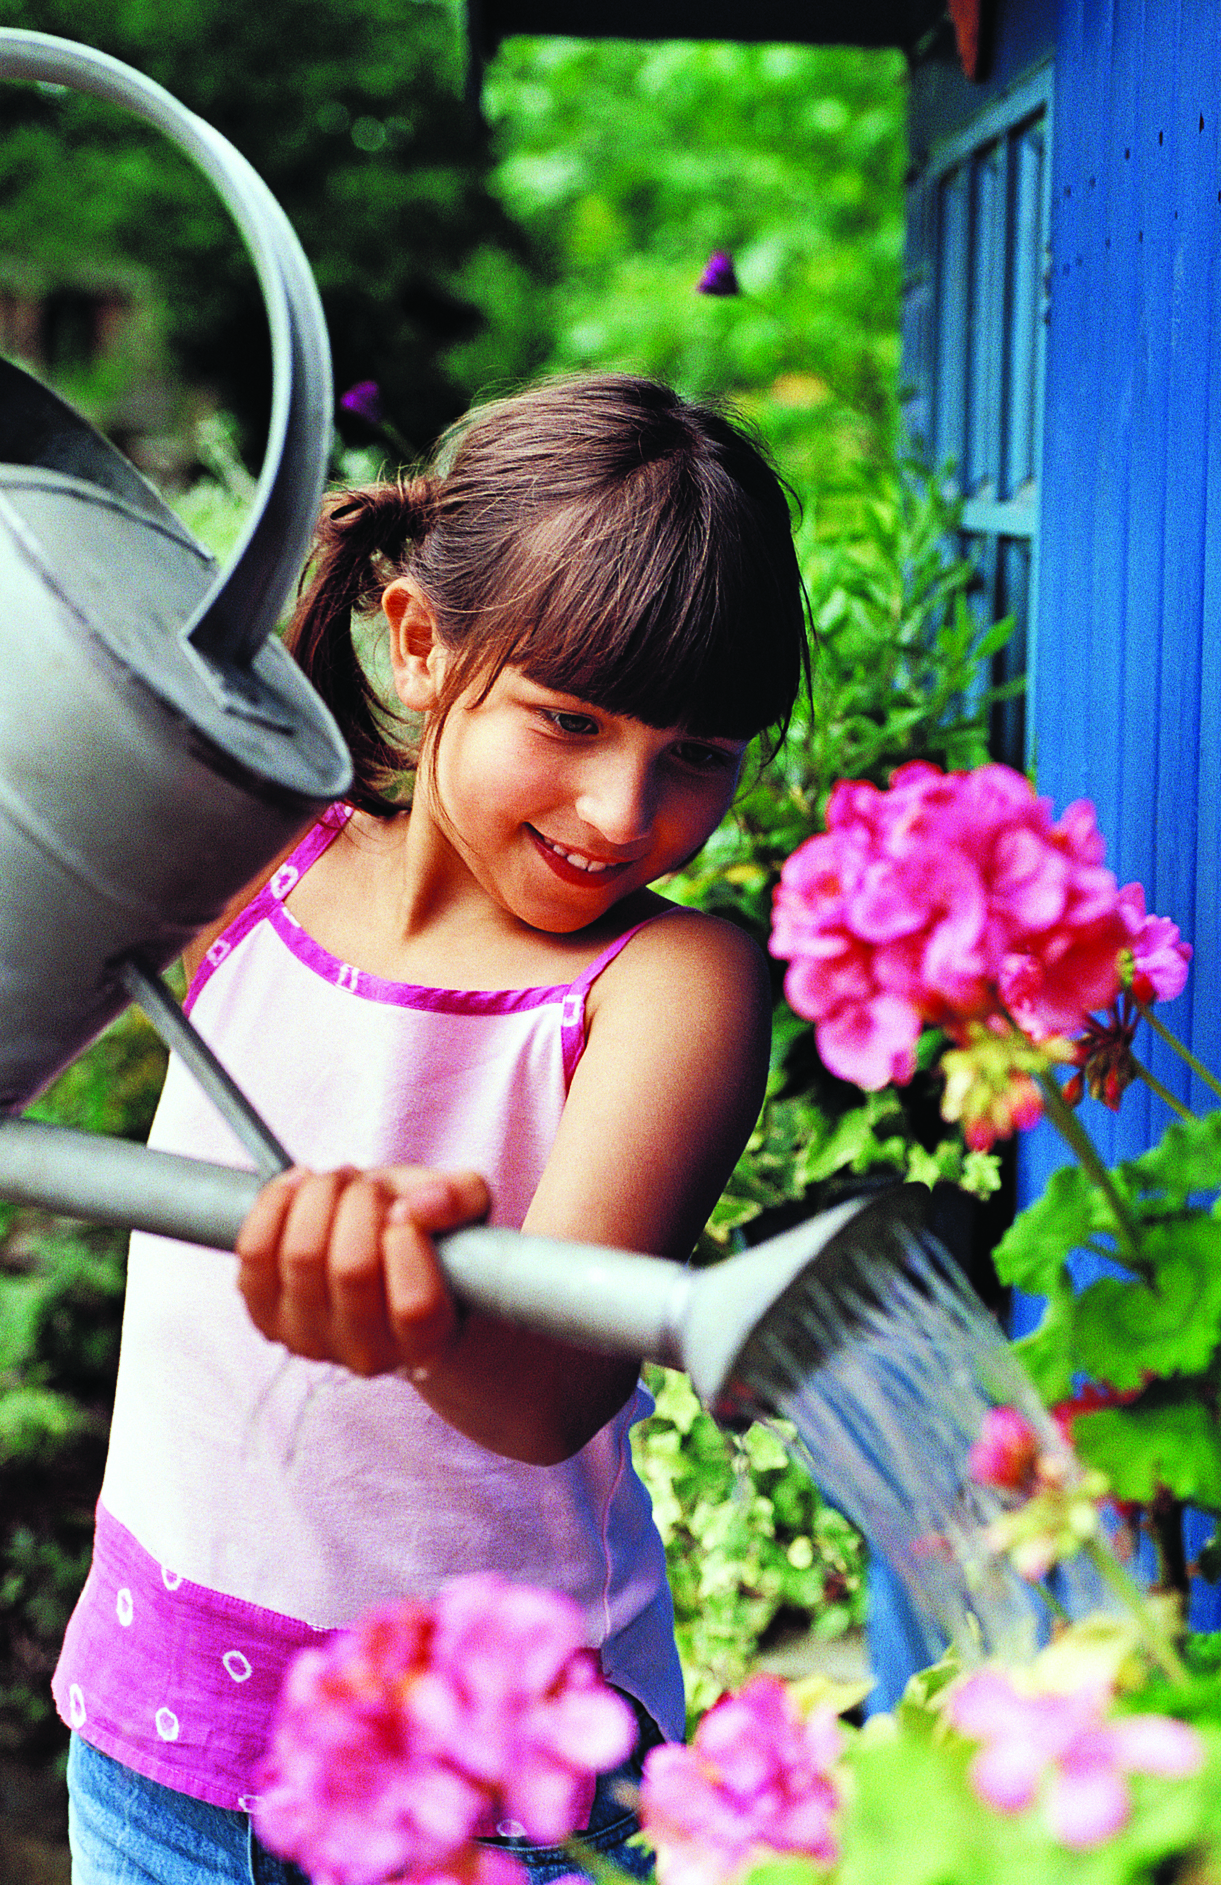 Get Kids Excited About Gardening